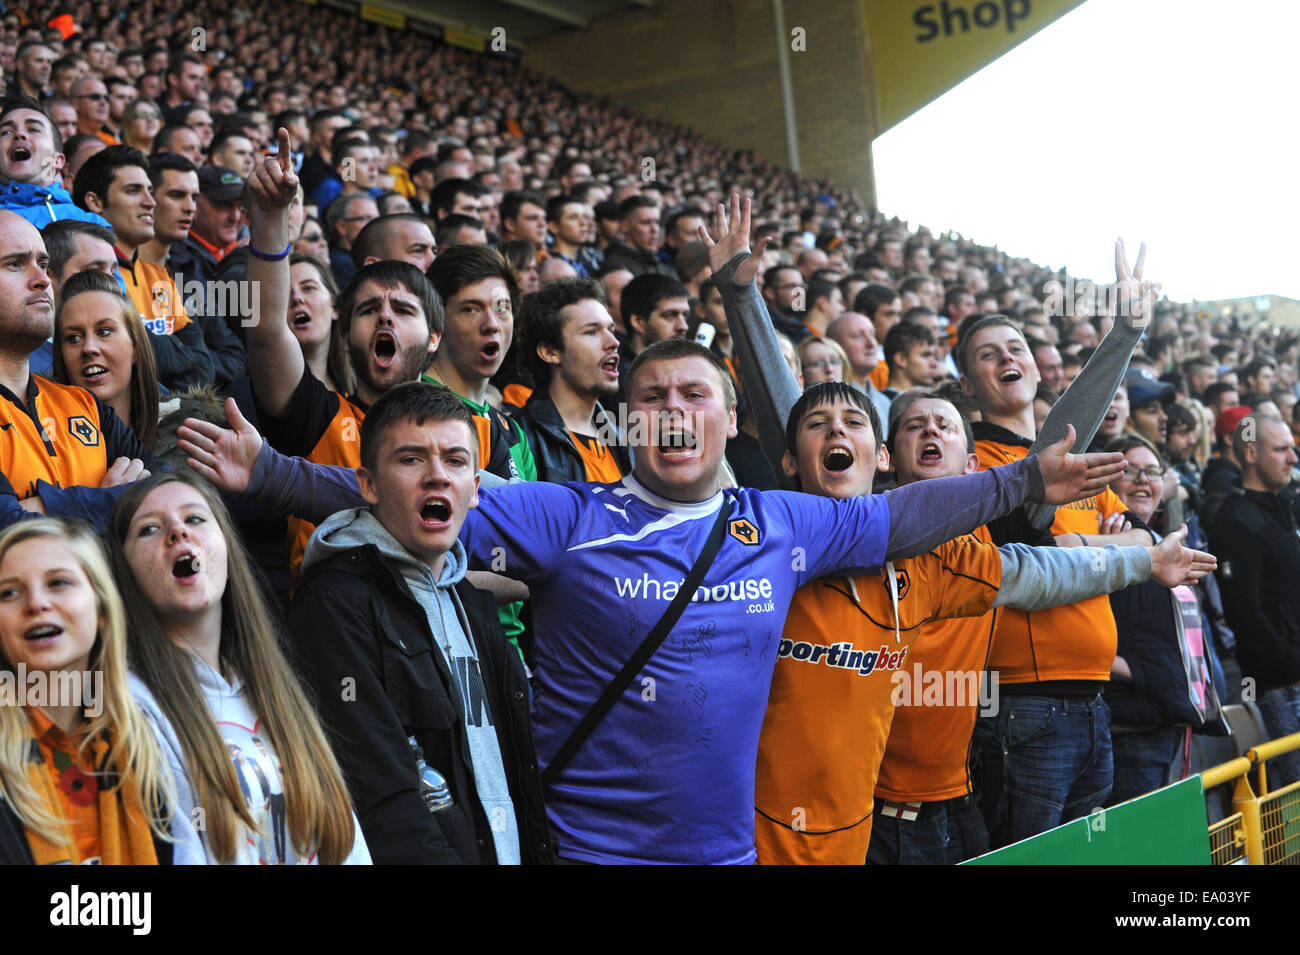 Football supporters fans crowd chanting watching match Wolverhampton Wanderers fans Uk - Stock Image